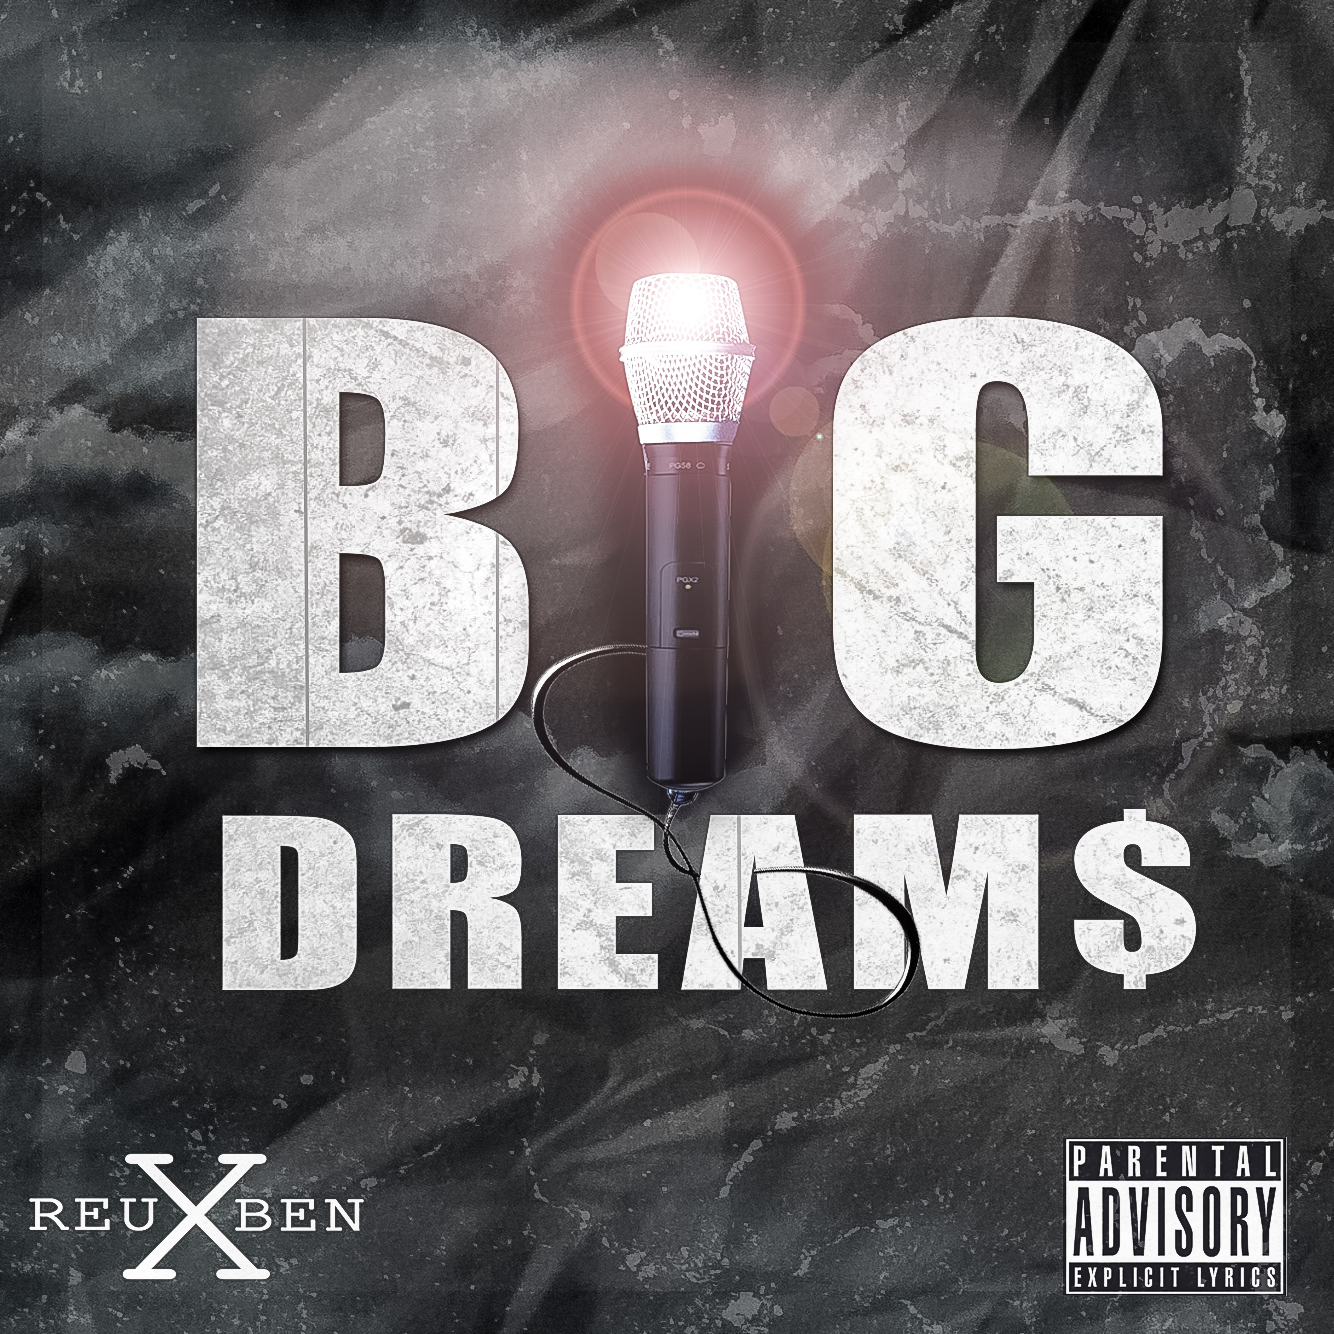 Reuben X Got's BIG DREAM$, In His Latest Single